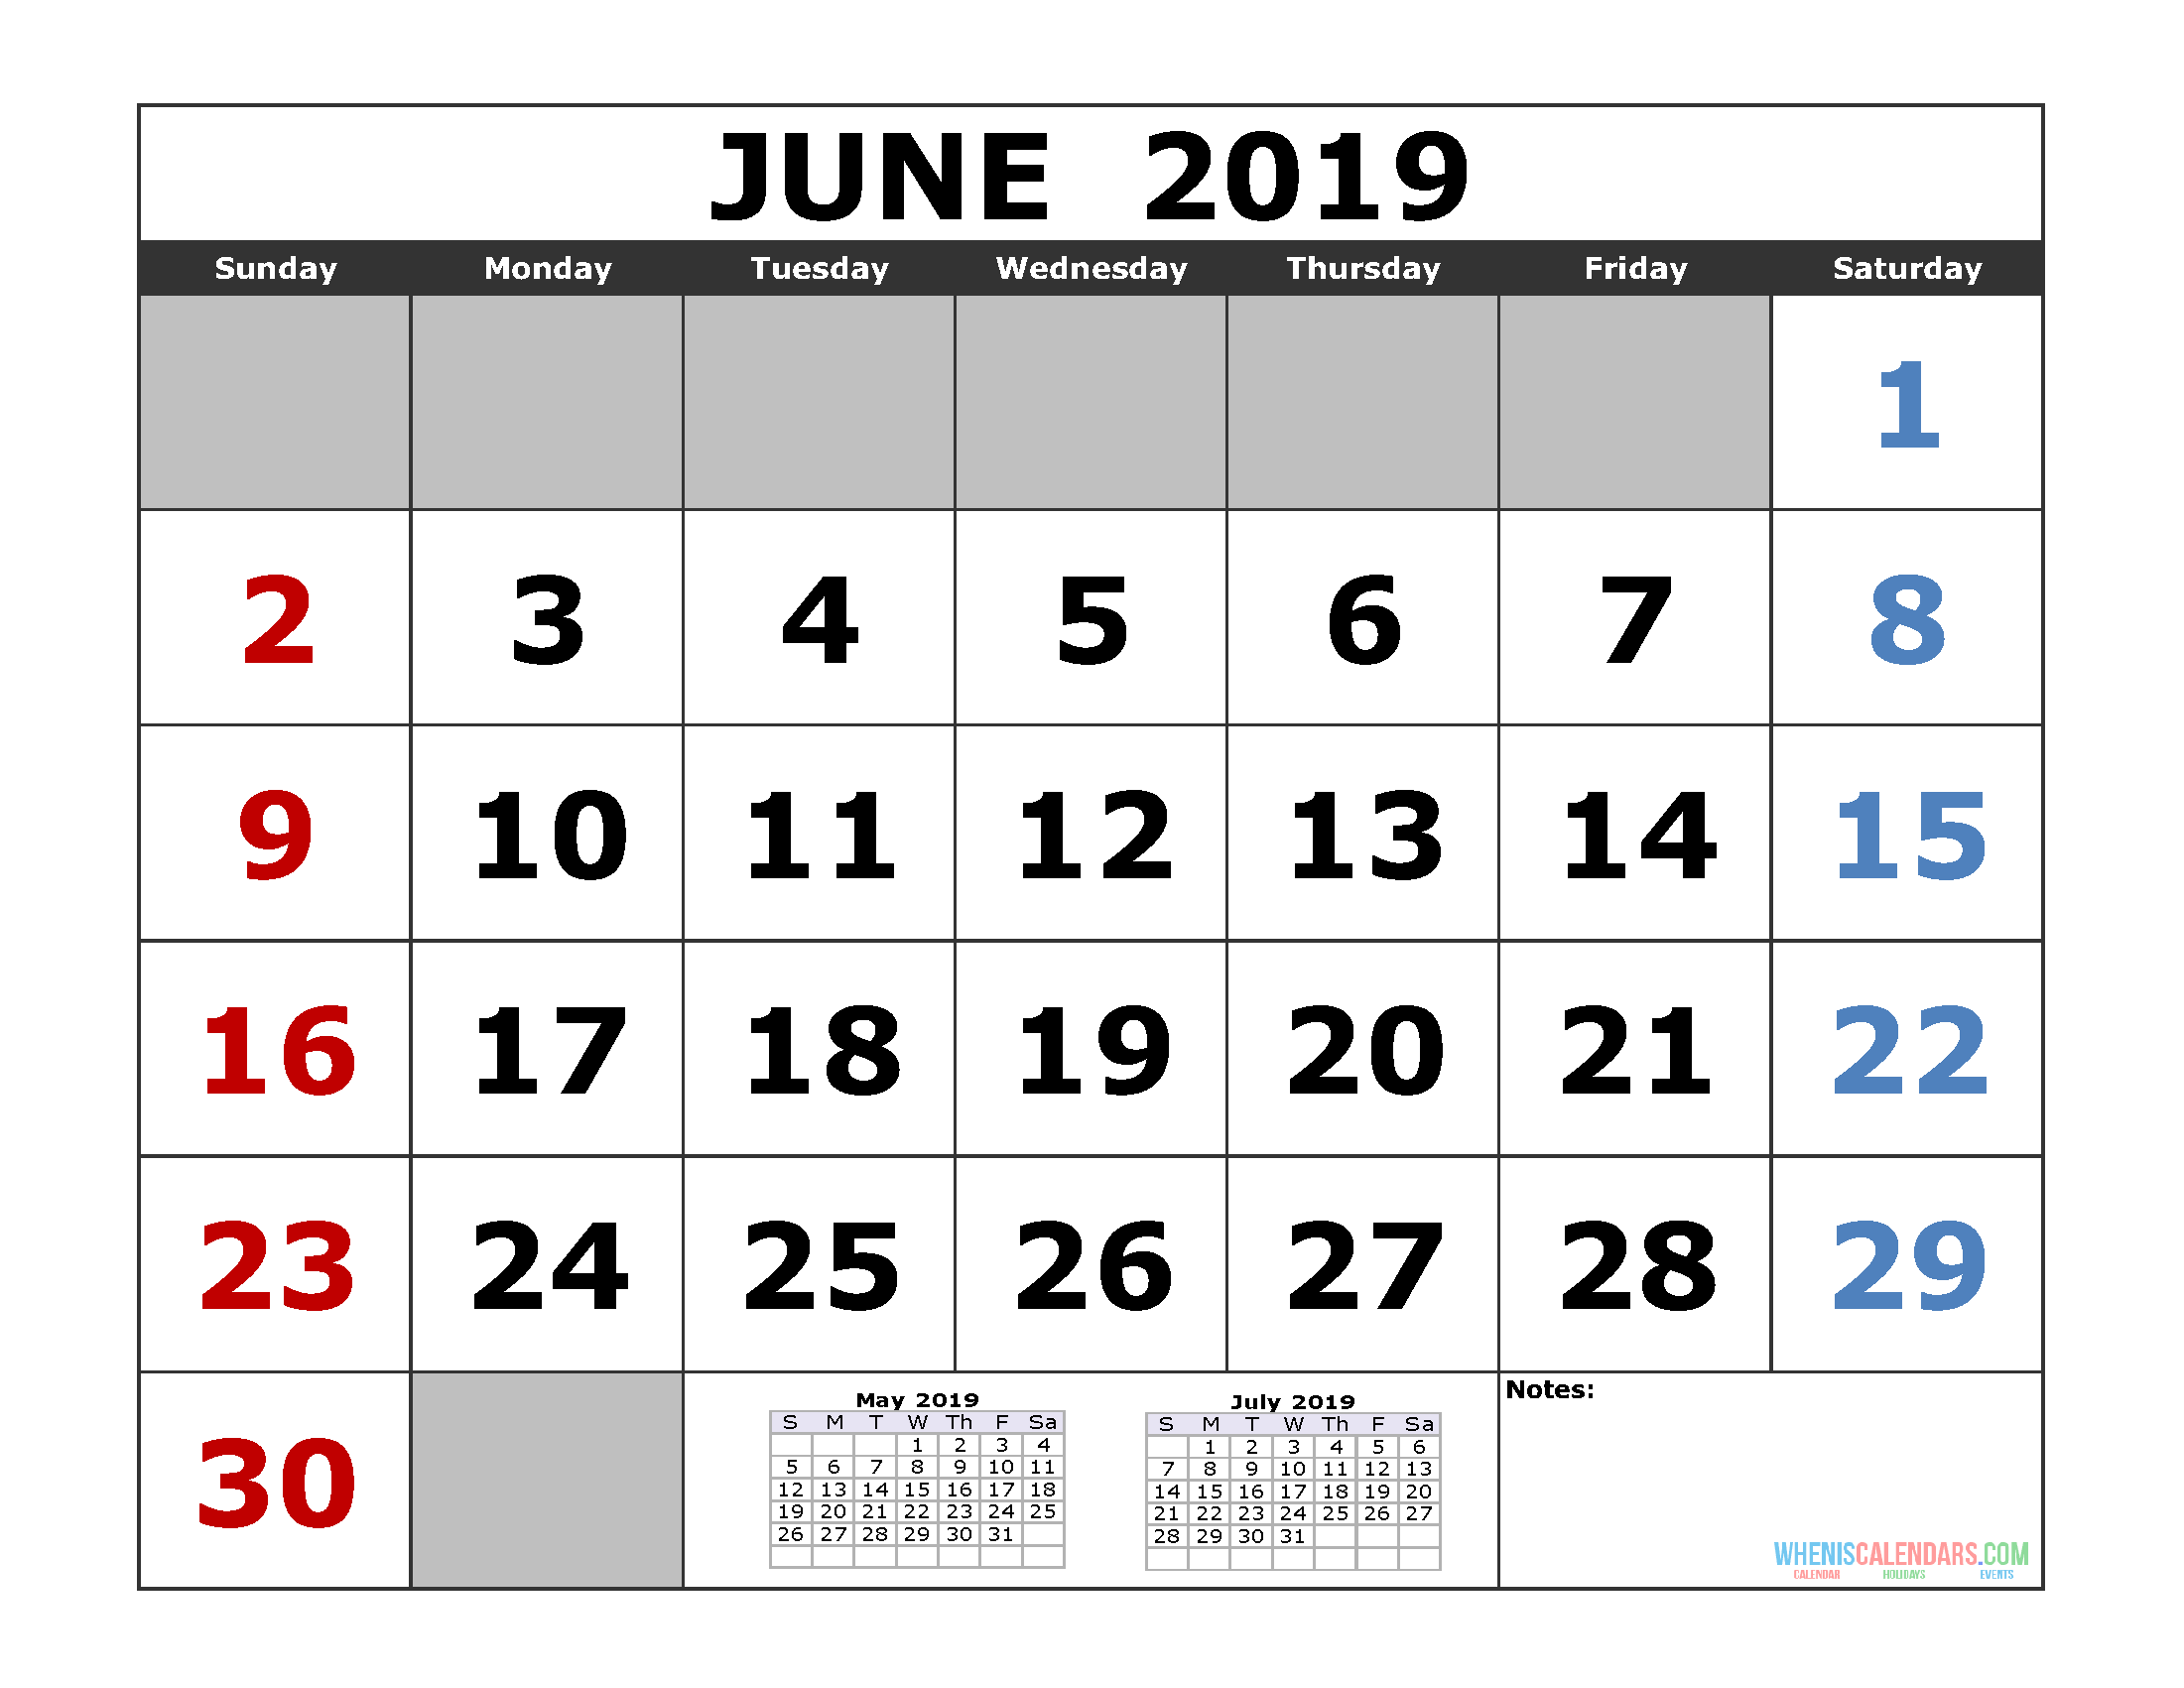 photo regarding Printable 3 Month Calendar identify June 2019 Printable Calendar Template (3 Thirty day period Calendar